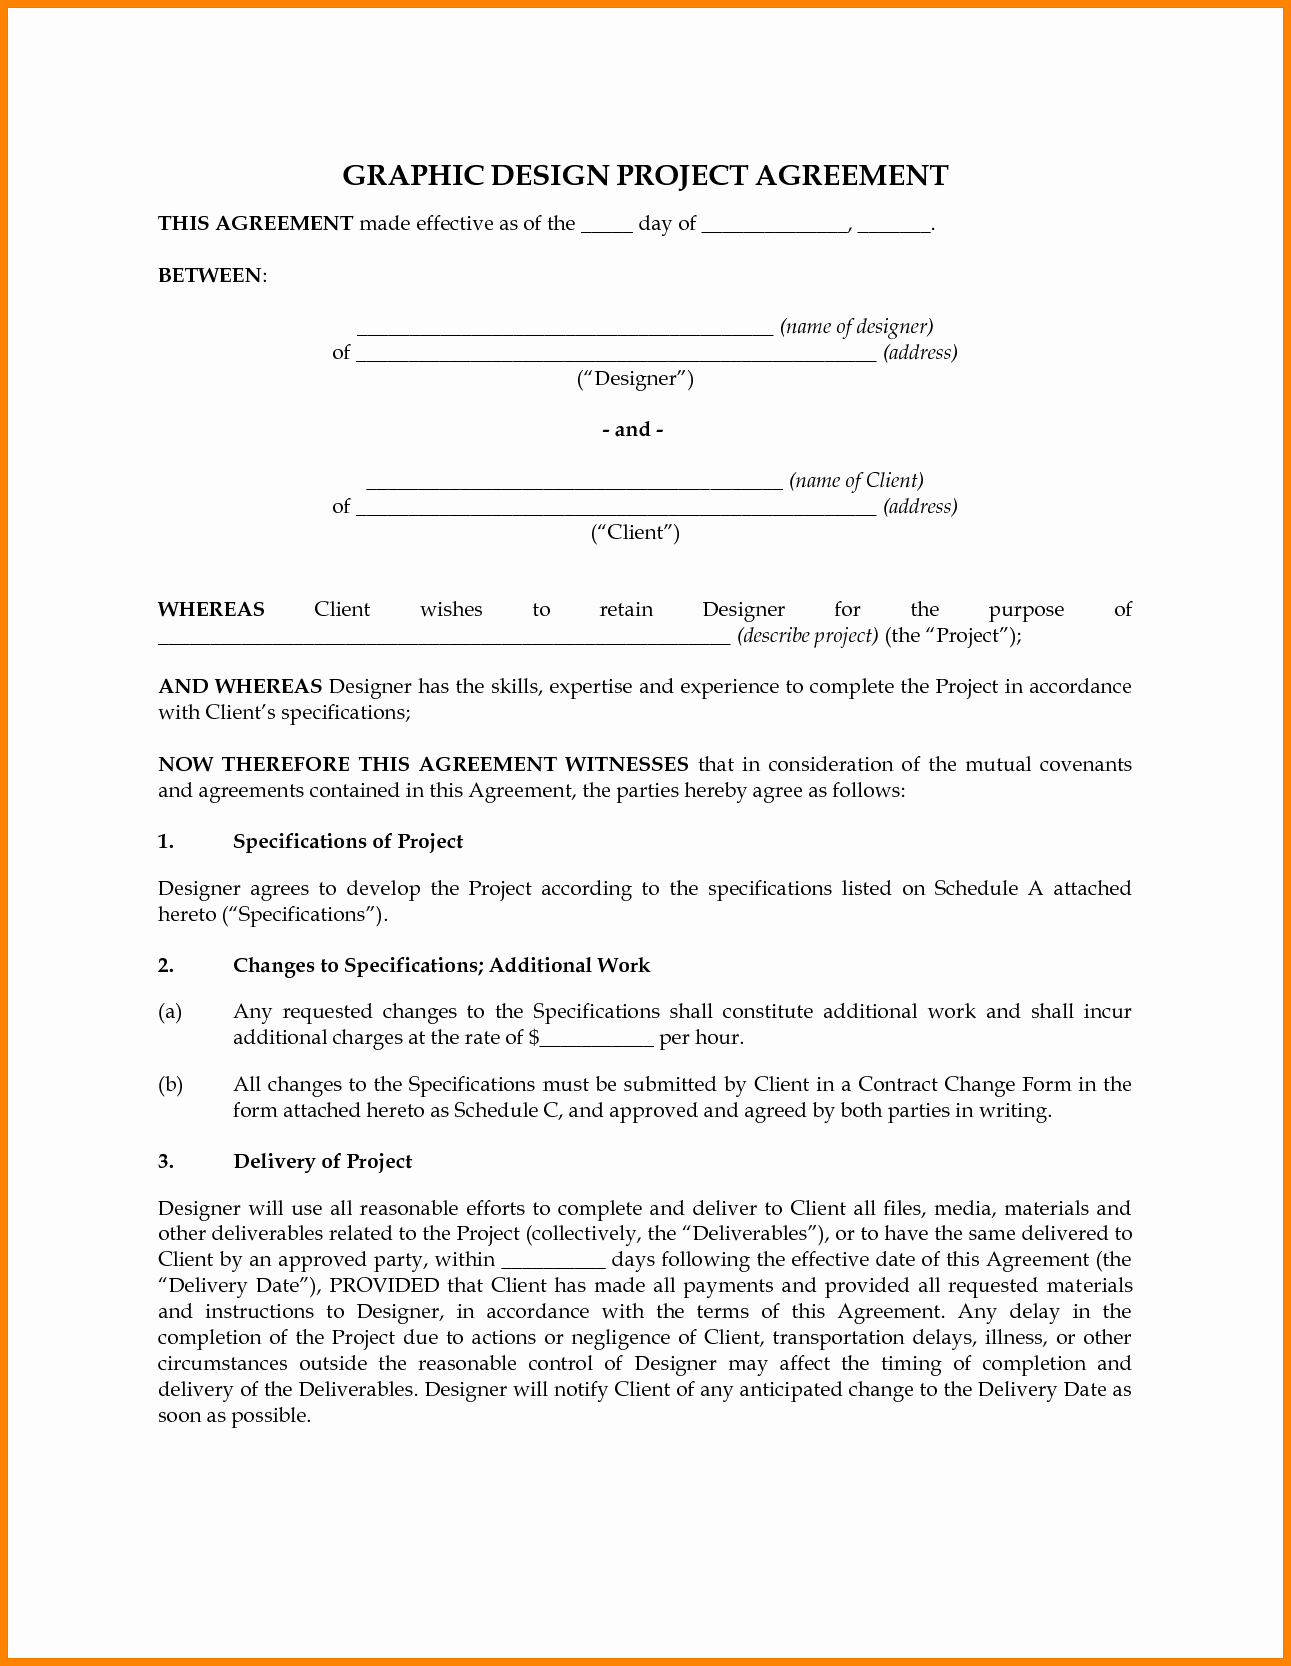 Graphic Design Contract Template Lovely 7 Graphic Design Contract